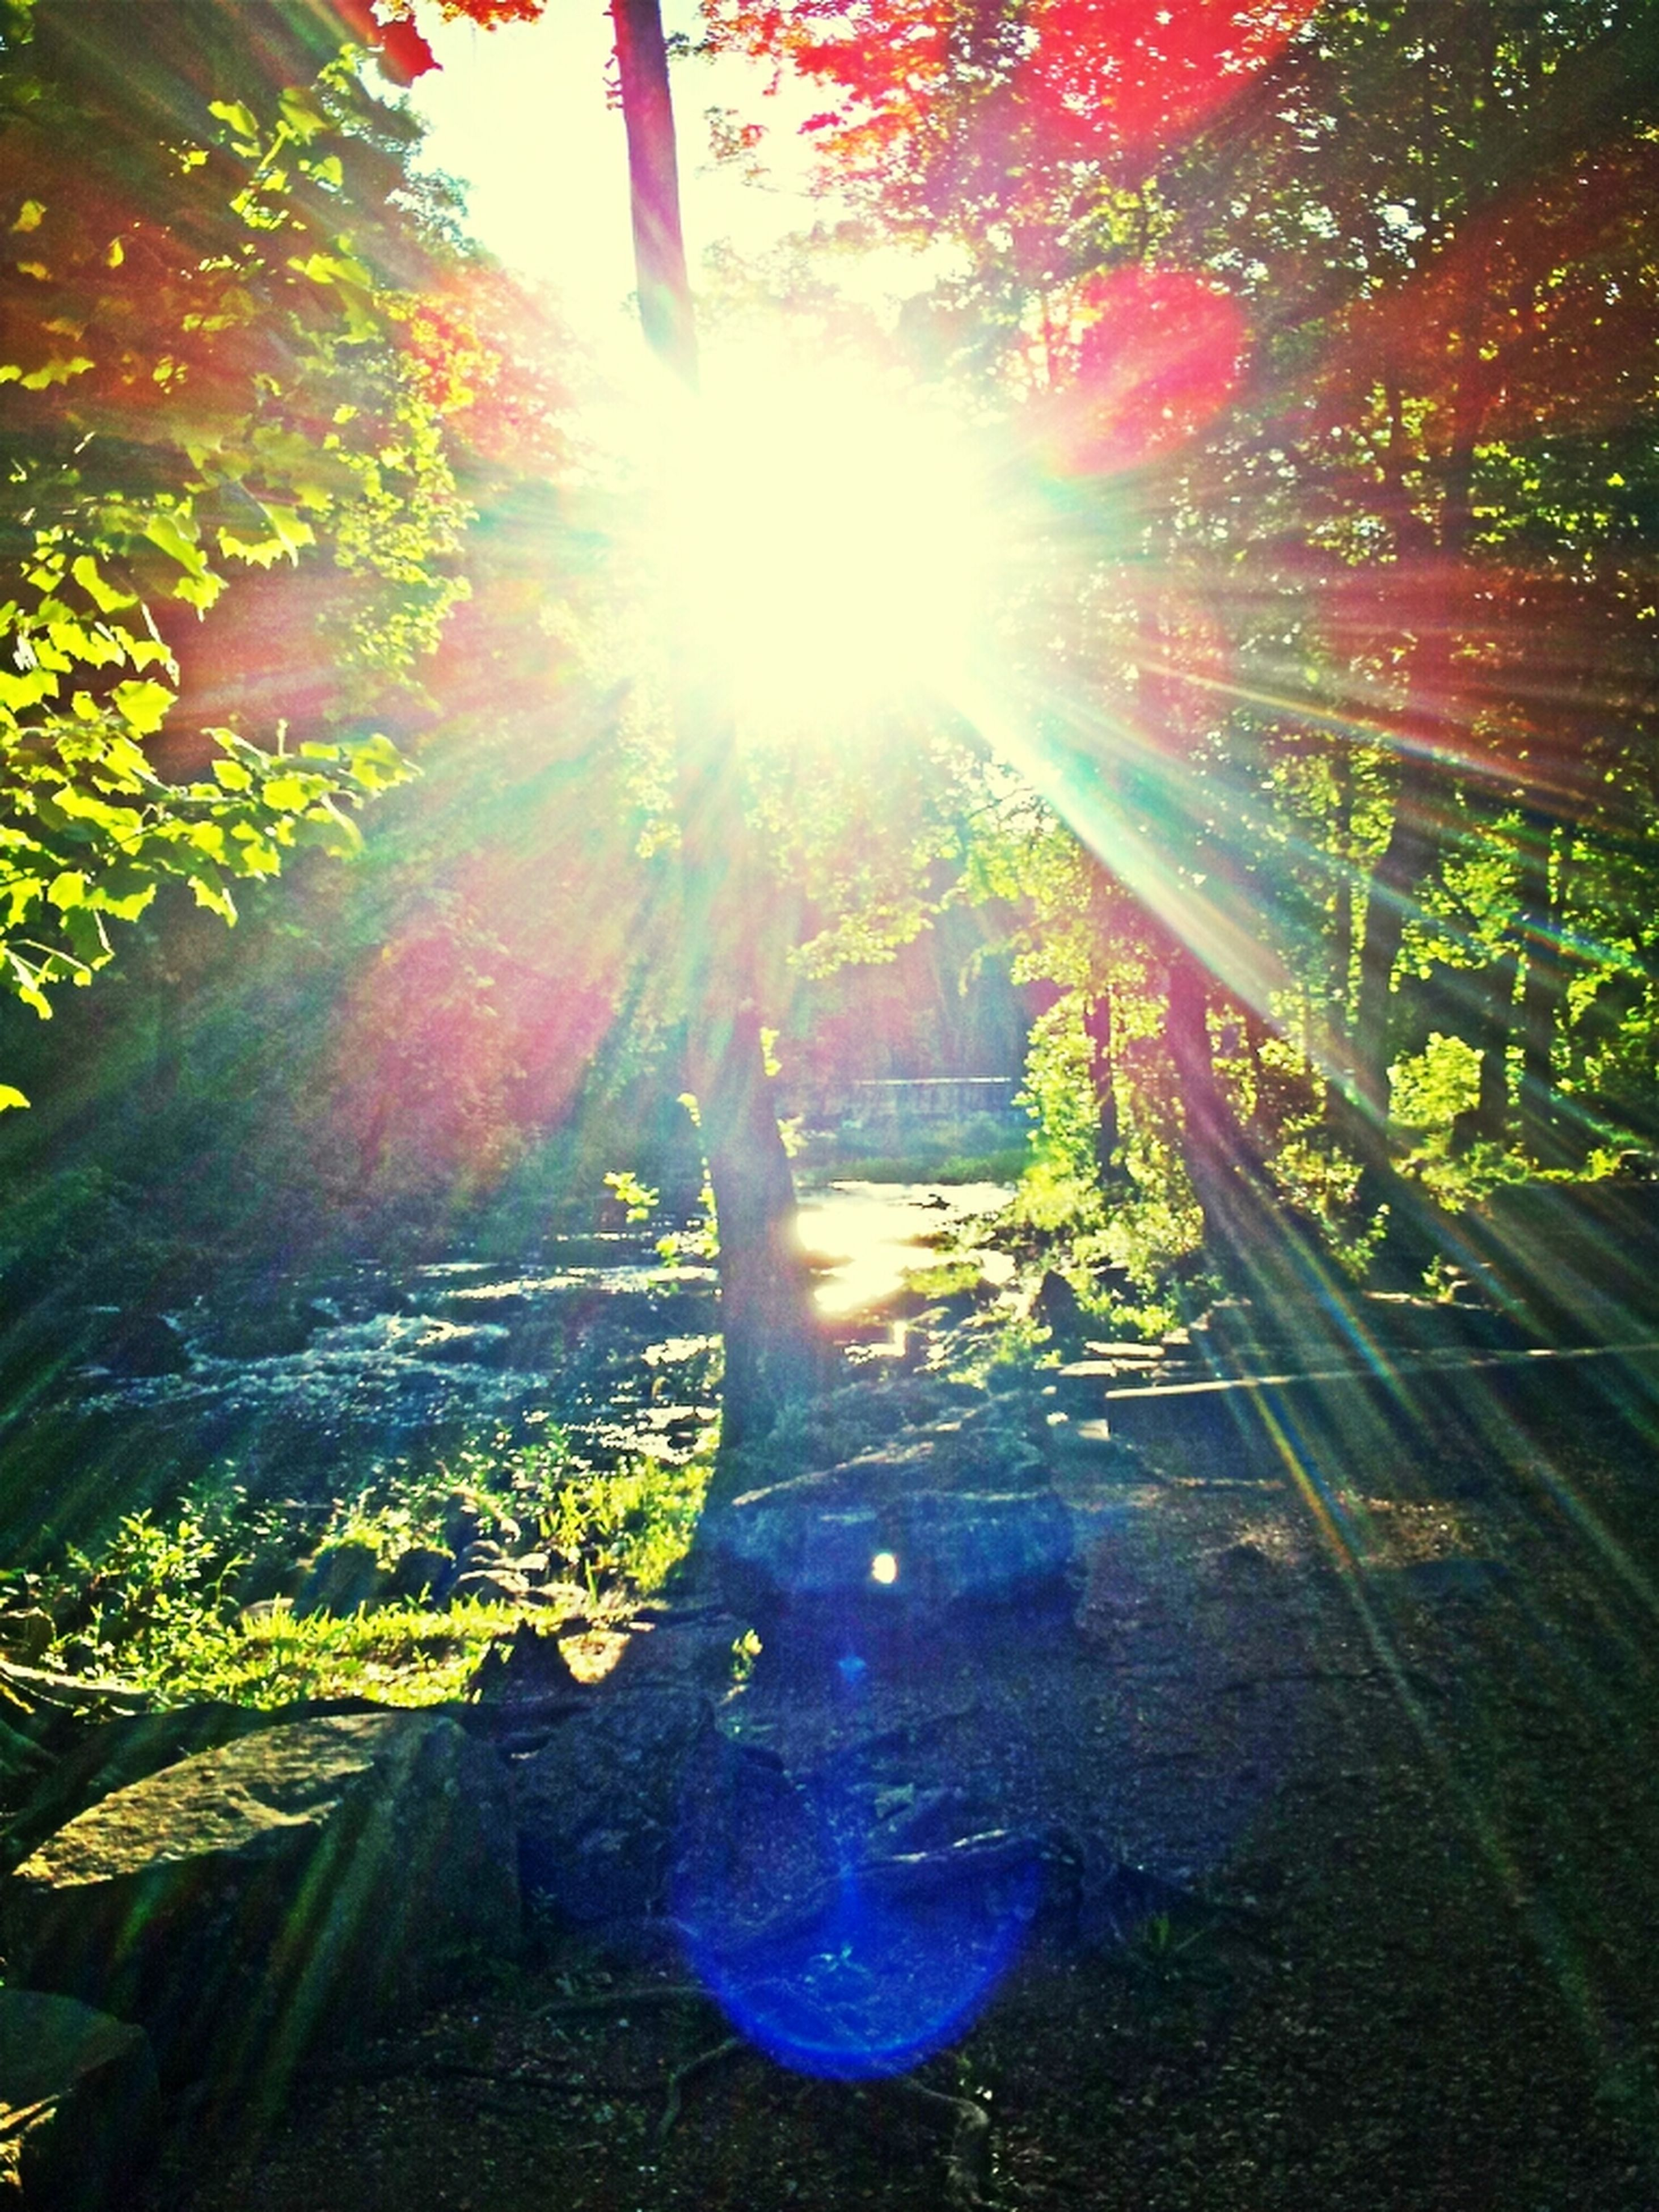 sun, sunbeam, sunlight, lens flare, tree, sunny, bright, growth, shiny, tranquility, nature, brightly lit, back lit, beauty in nature, solar flare, day, shining, tranquil scene, streaming, outdoors